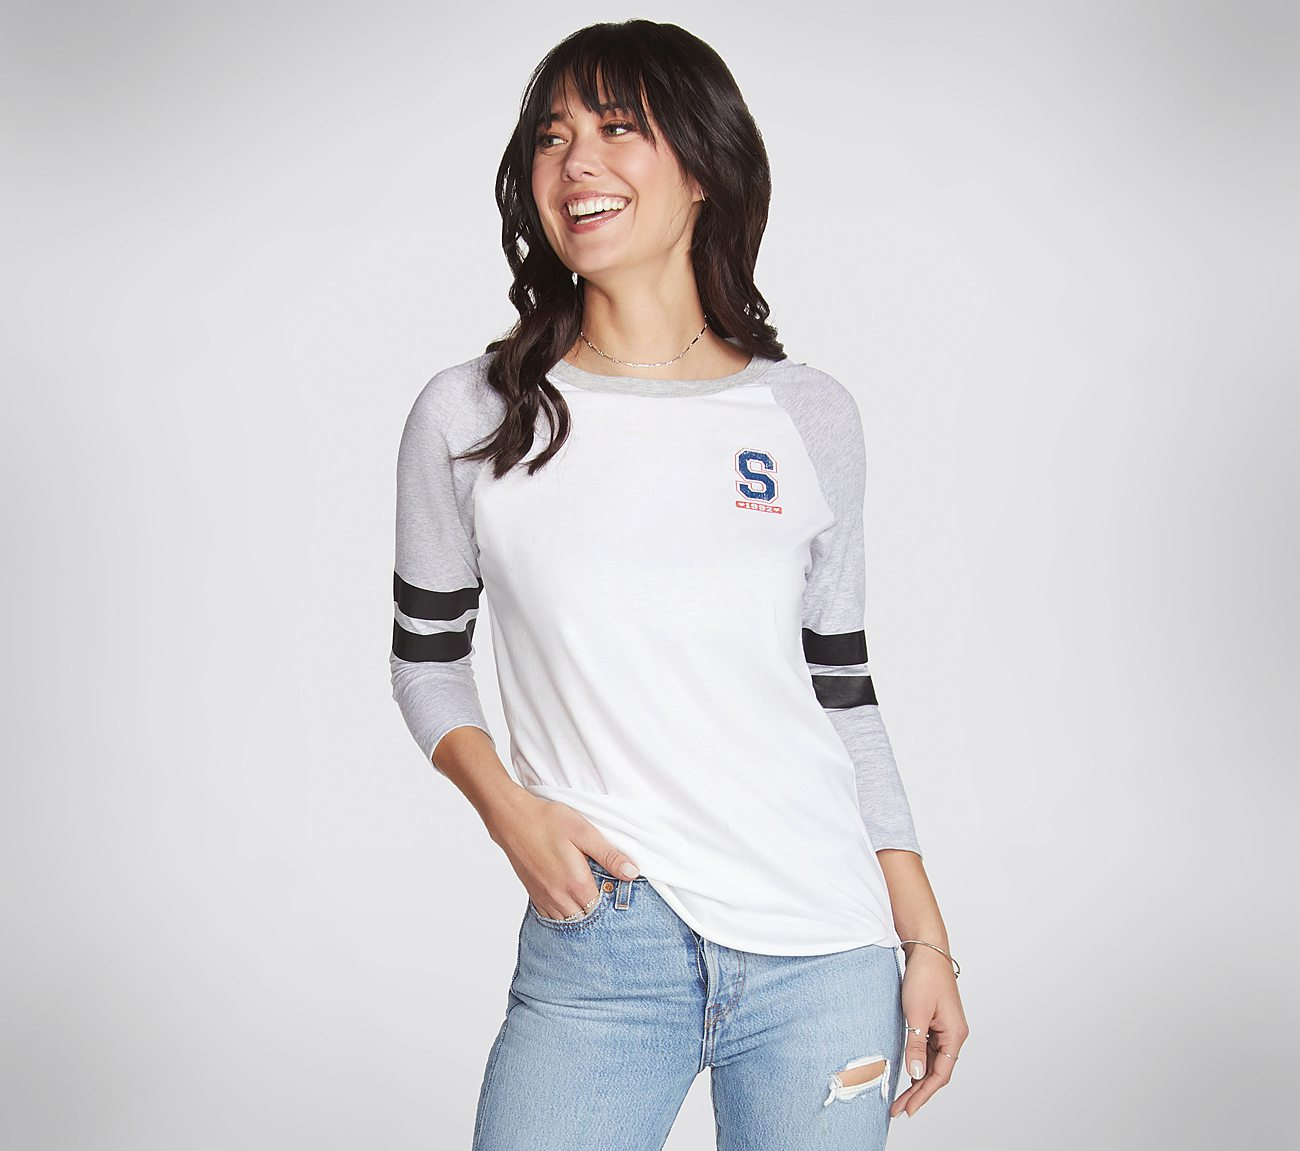 Skechers Apparel Lounger Baseball Tee Shirt